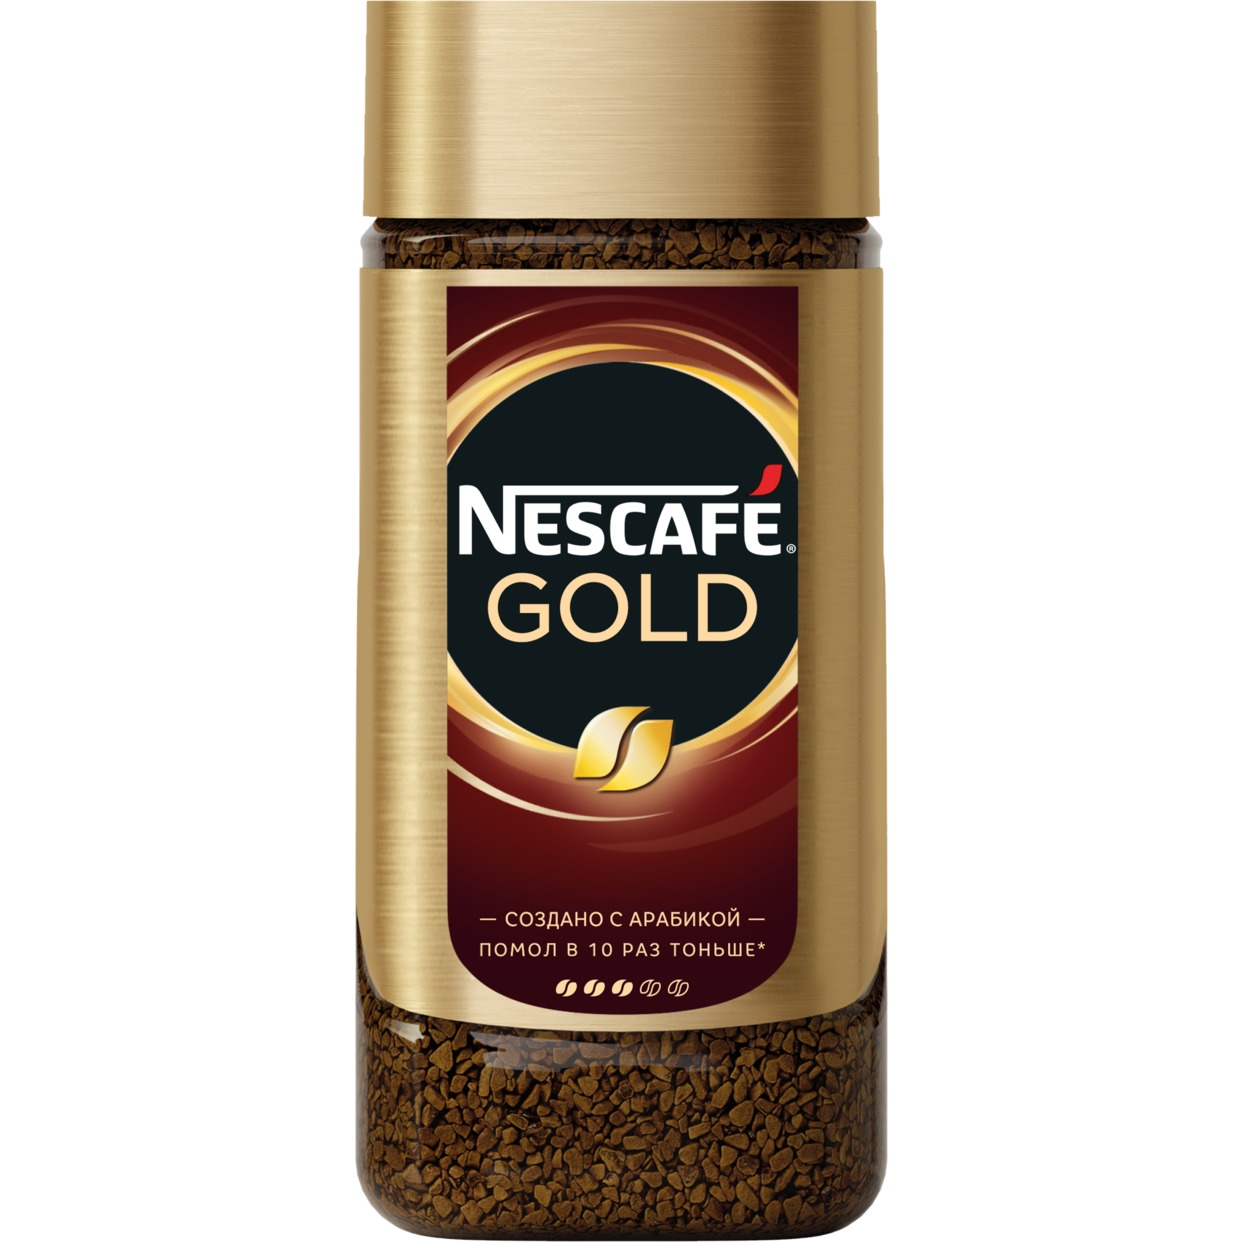 Кофе Nescafe Gold, растворимый, 190 г